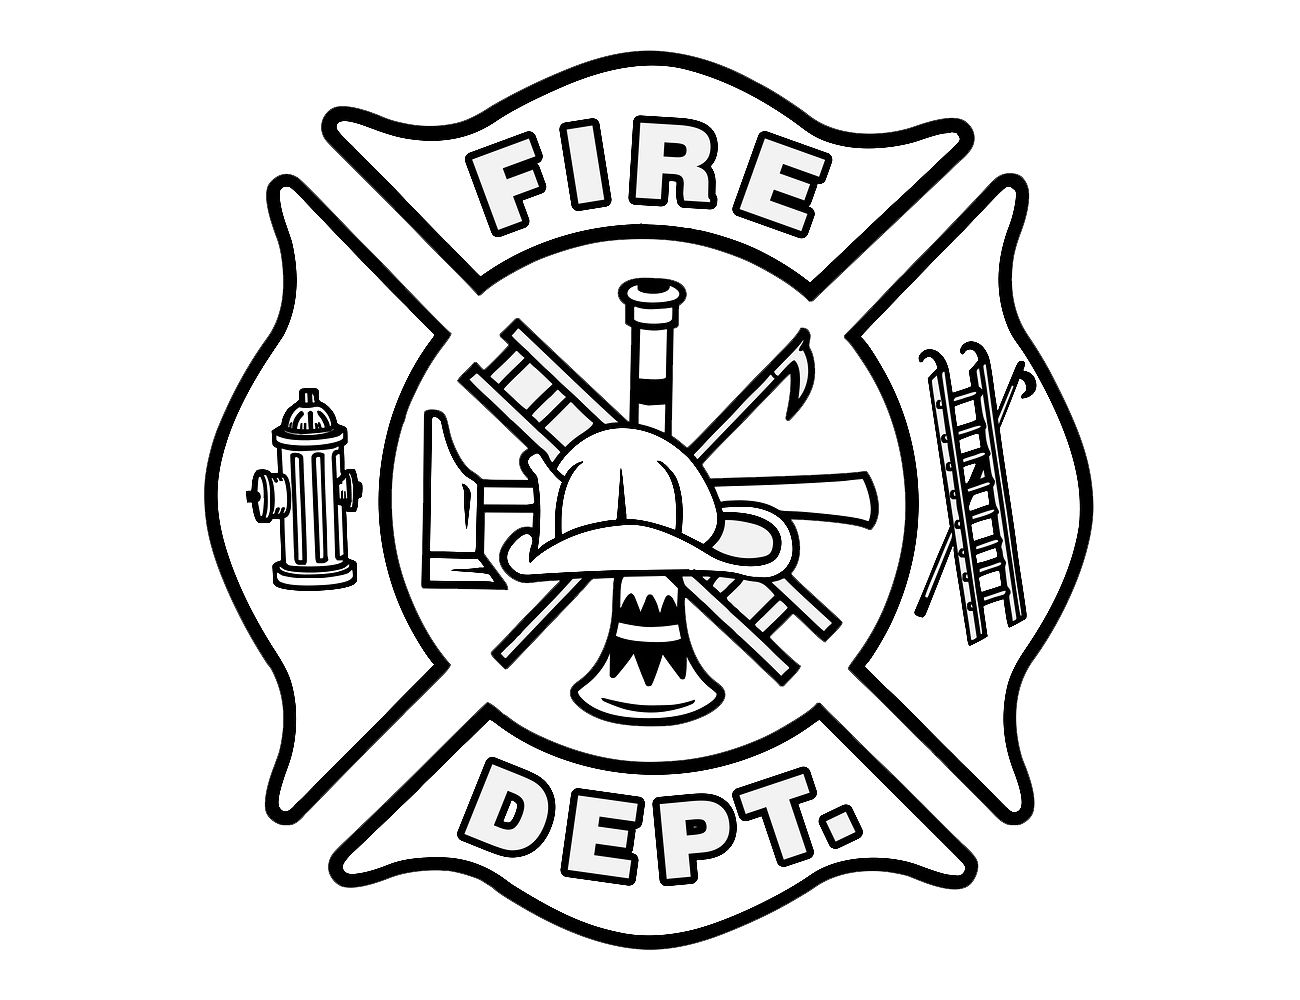 Symbol Fire Department Cross Coloring Page Nemo Coloring Pages Dream Catcher Coloring Pages